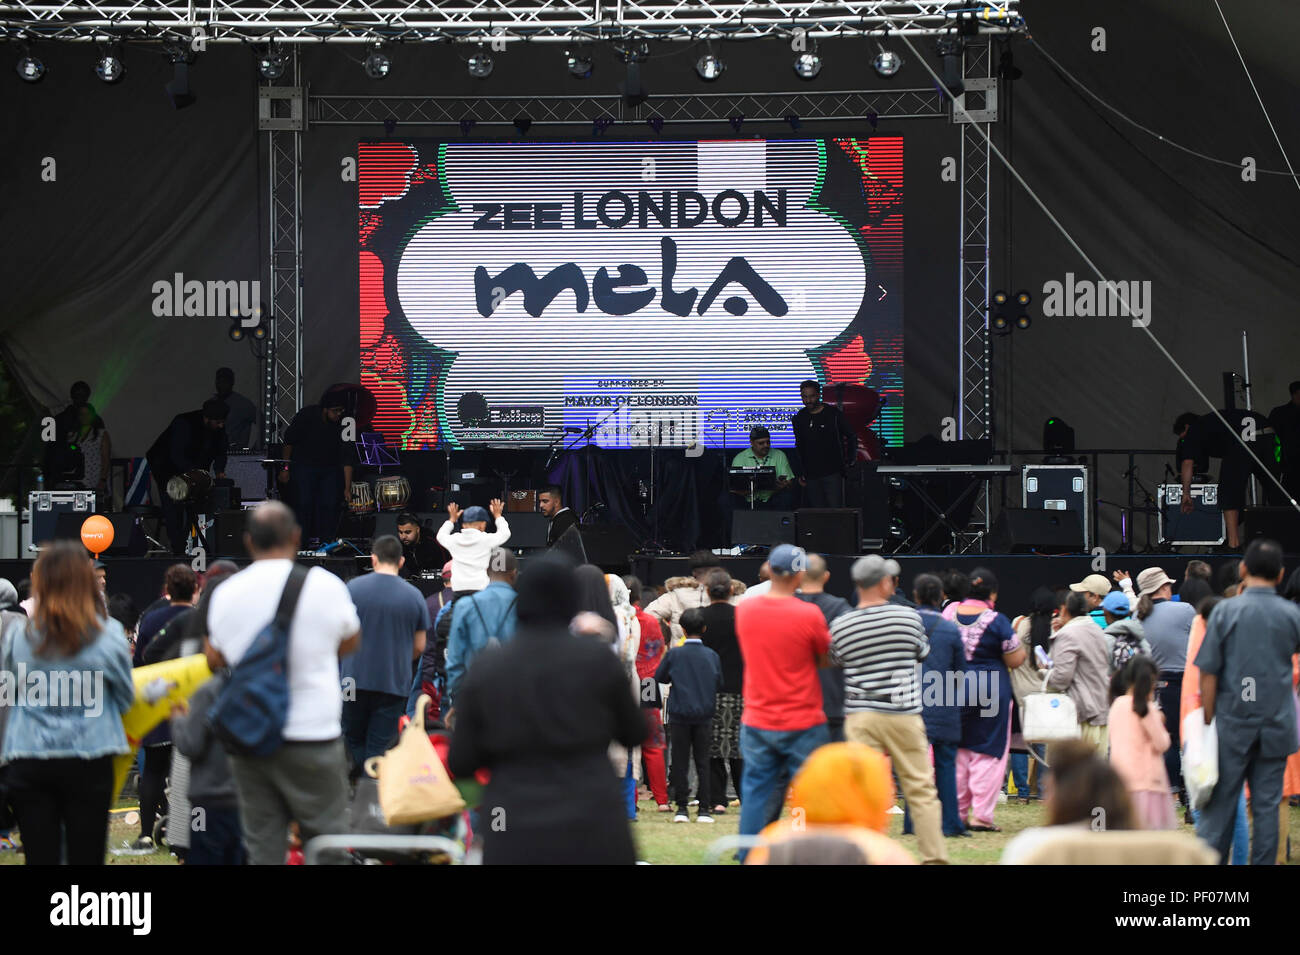 eef0a71eb8 London, UK. 18 August 2018. The main stage at the ZEE London Mela